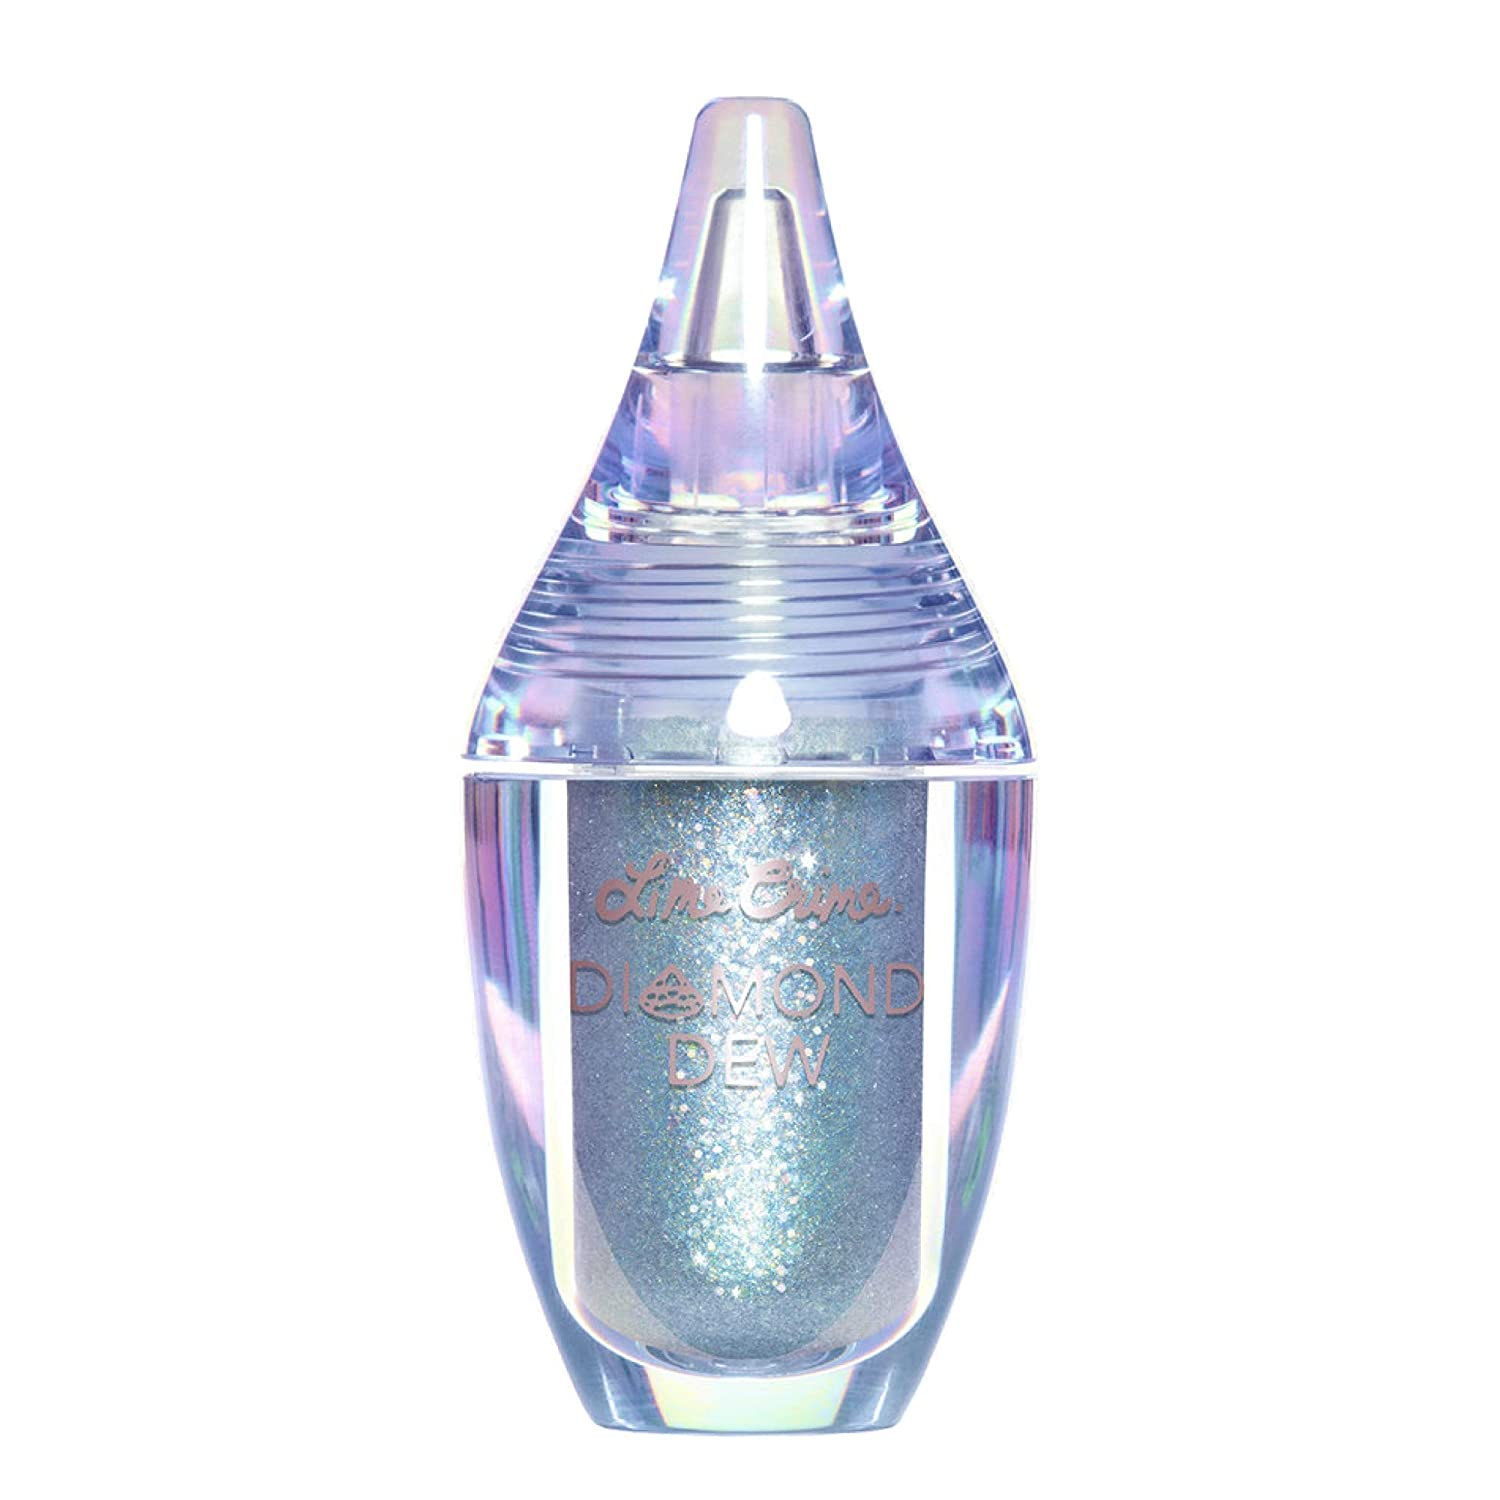 Lime Crime Diamond Dew Glitter Eyeshadow, Tearful - Aqua Iridescent Lid Topper - Reflective Sparkle Shadow for Lids, Cheeks & Body - Won't Smudge or Crease - Vegan - 0.14 fl oz